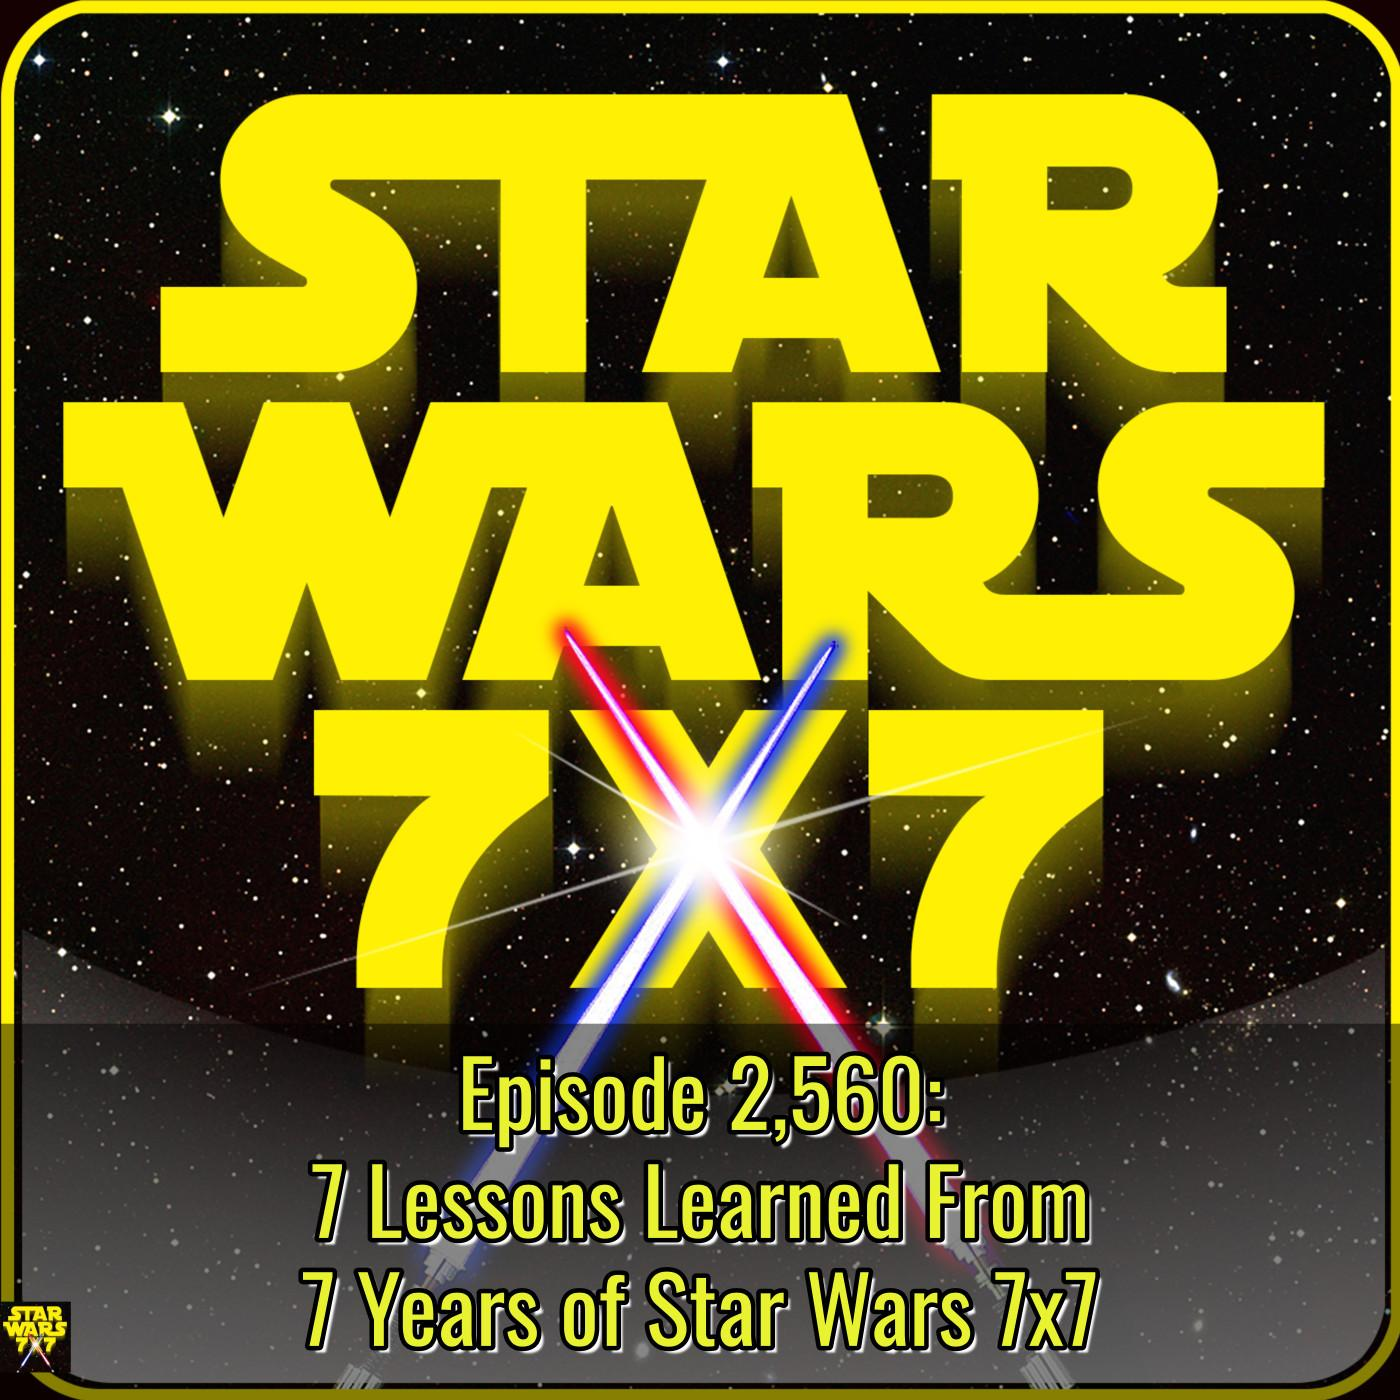 2,560. 7 Lessons Learned From 7 Years of Star Wars 7x7